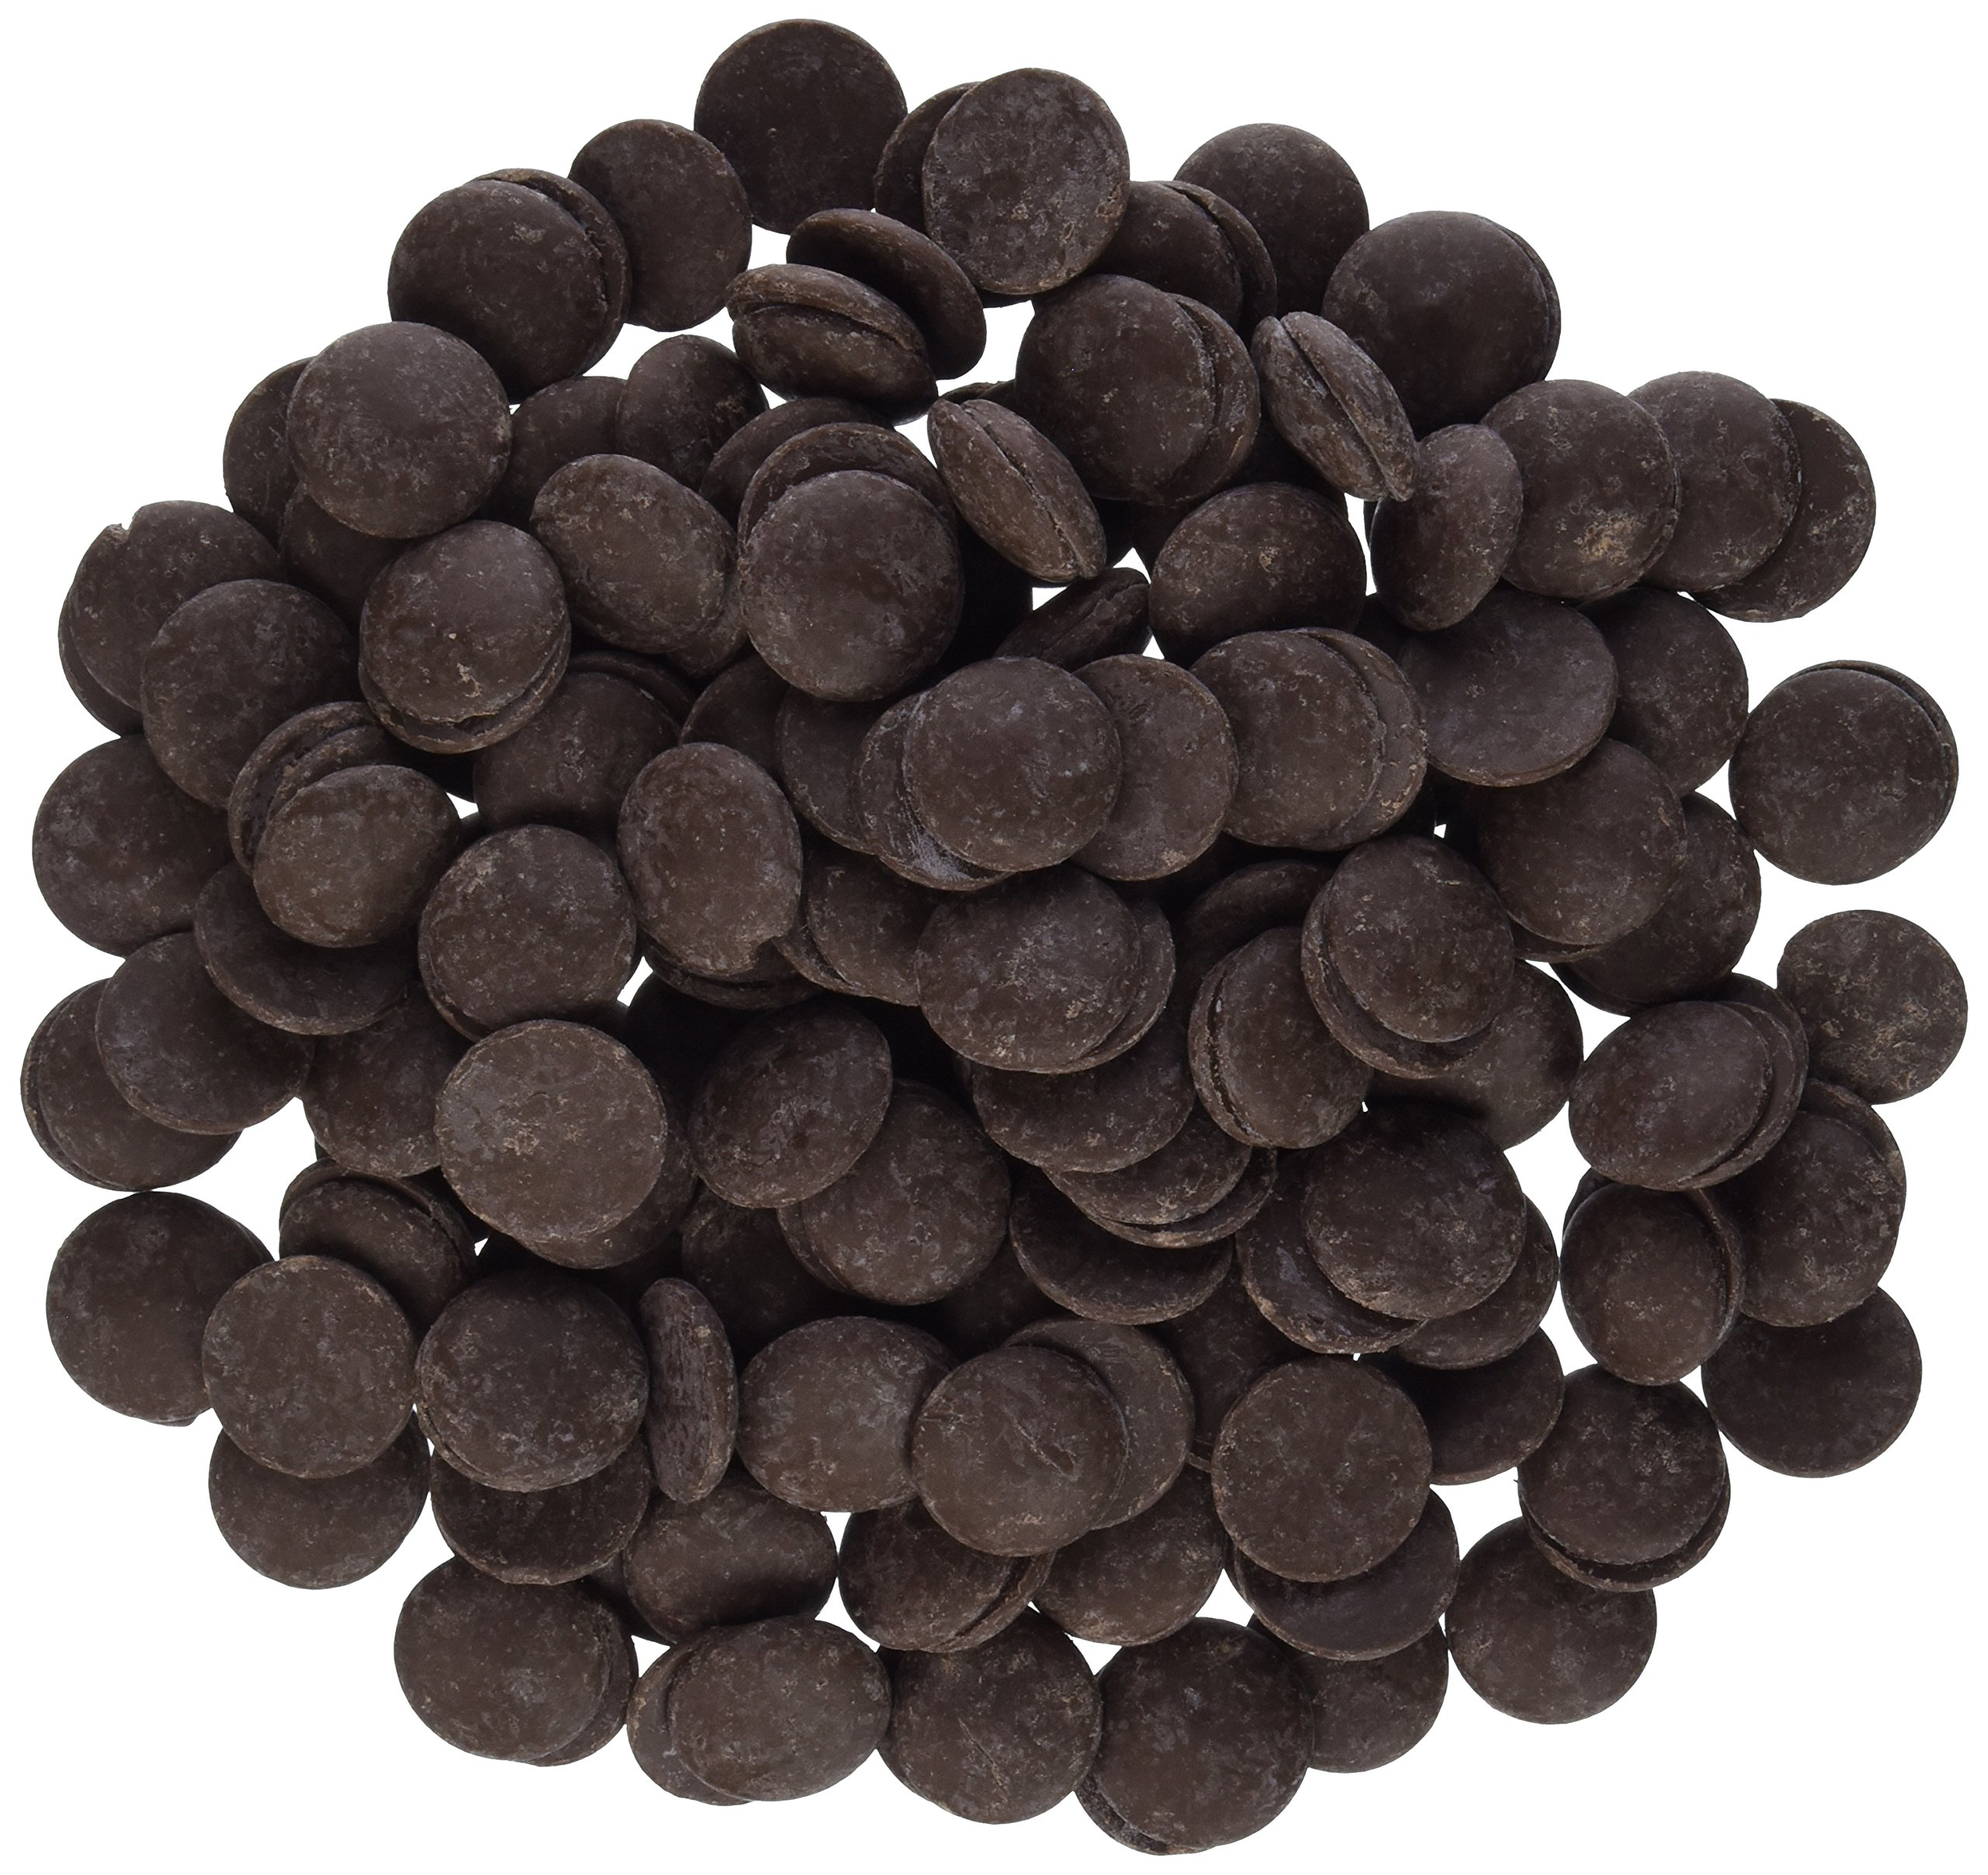 Oasis Supply Mercken's Chocolate Wafters Candy Making Supplies, Dark, 10 Pound by Oasis Supply (Image #1)